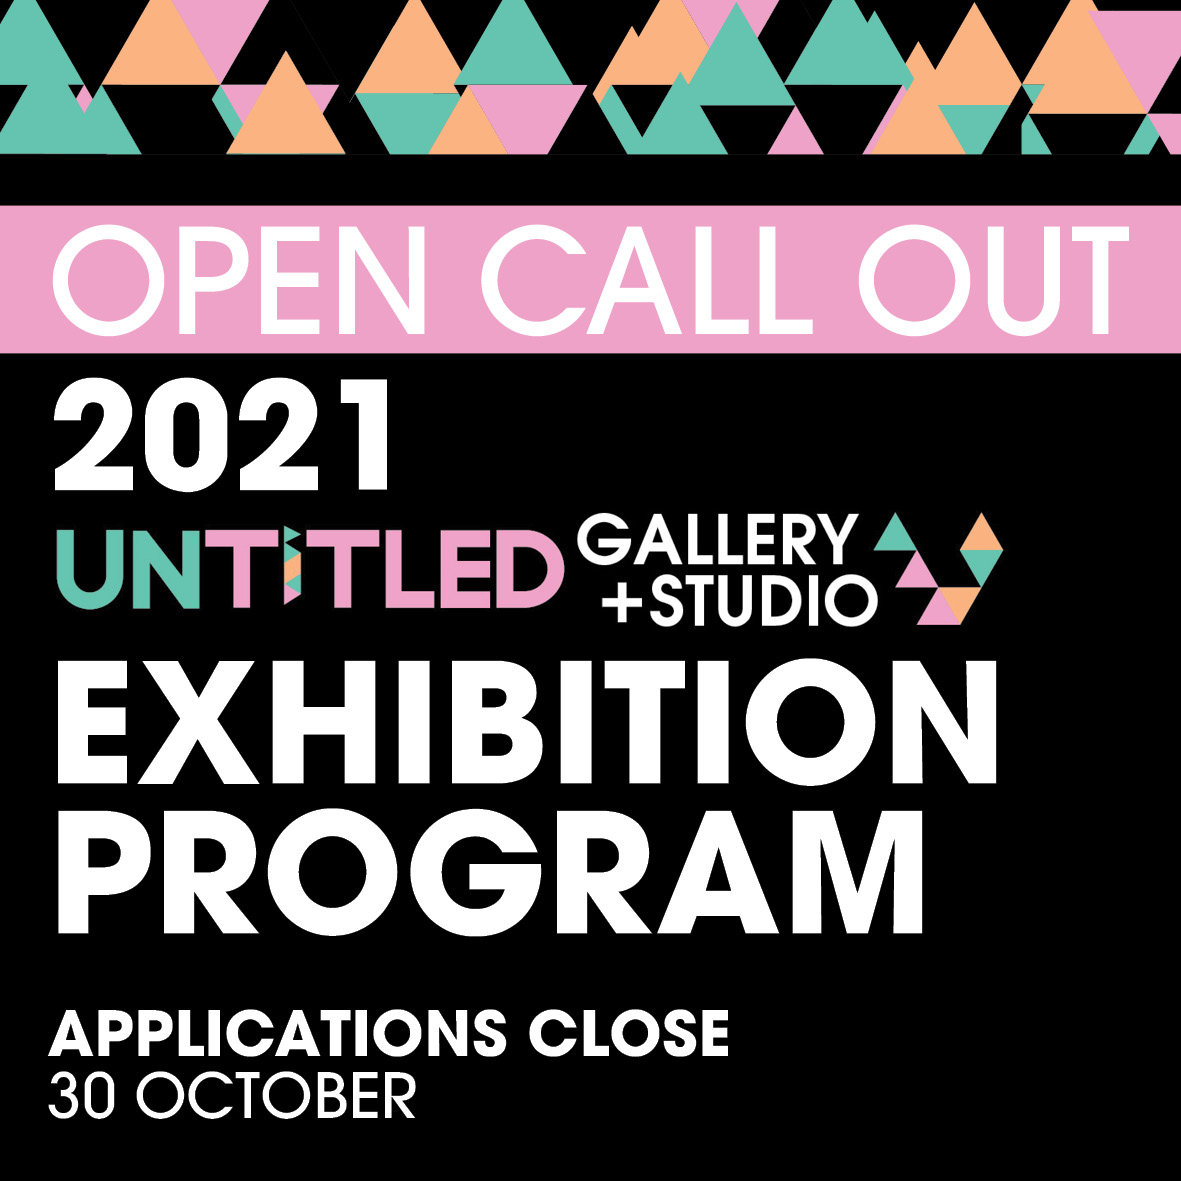 Applications NOW OPEN for our 2021 Exhibition Program